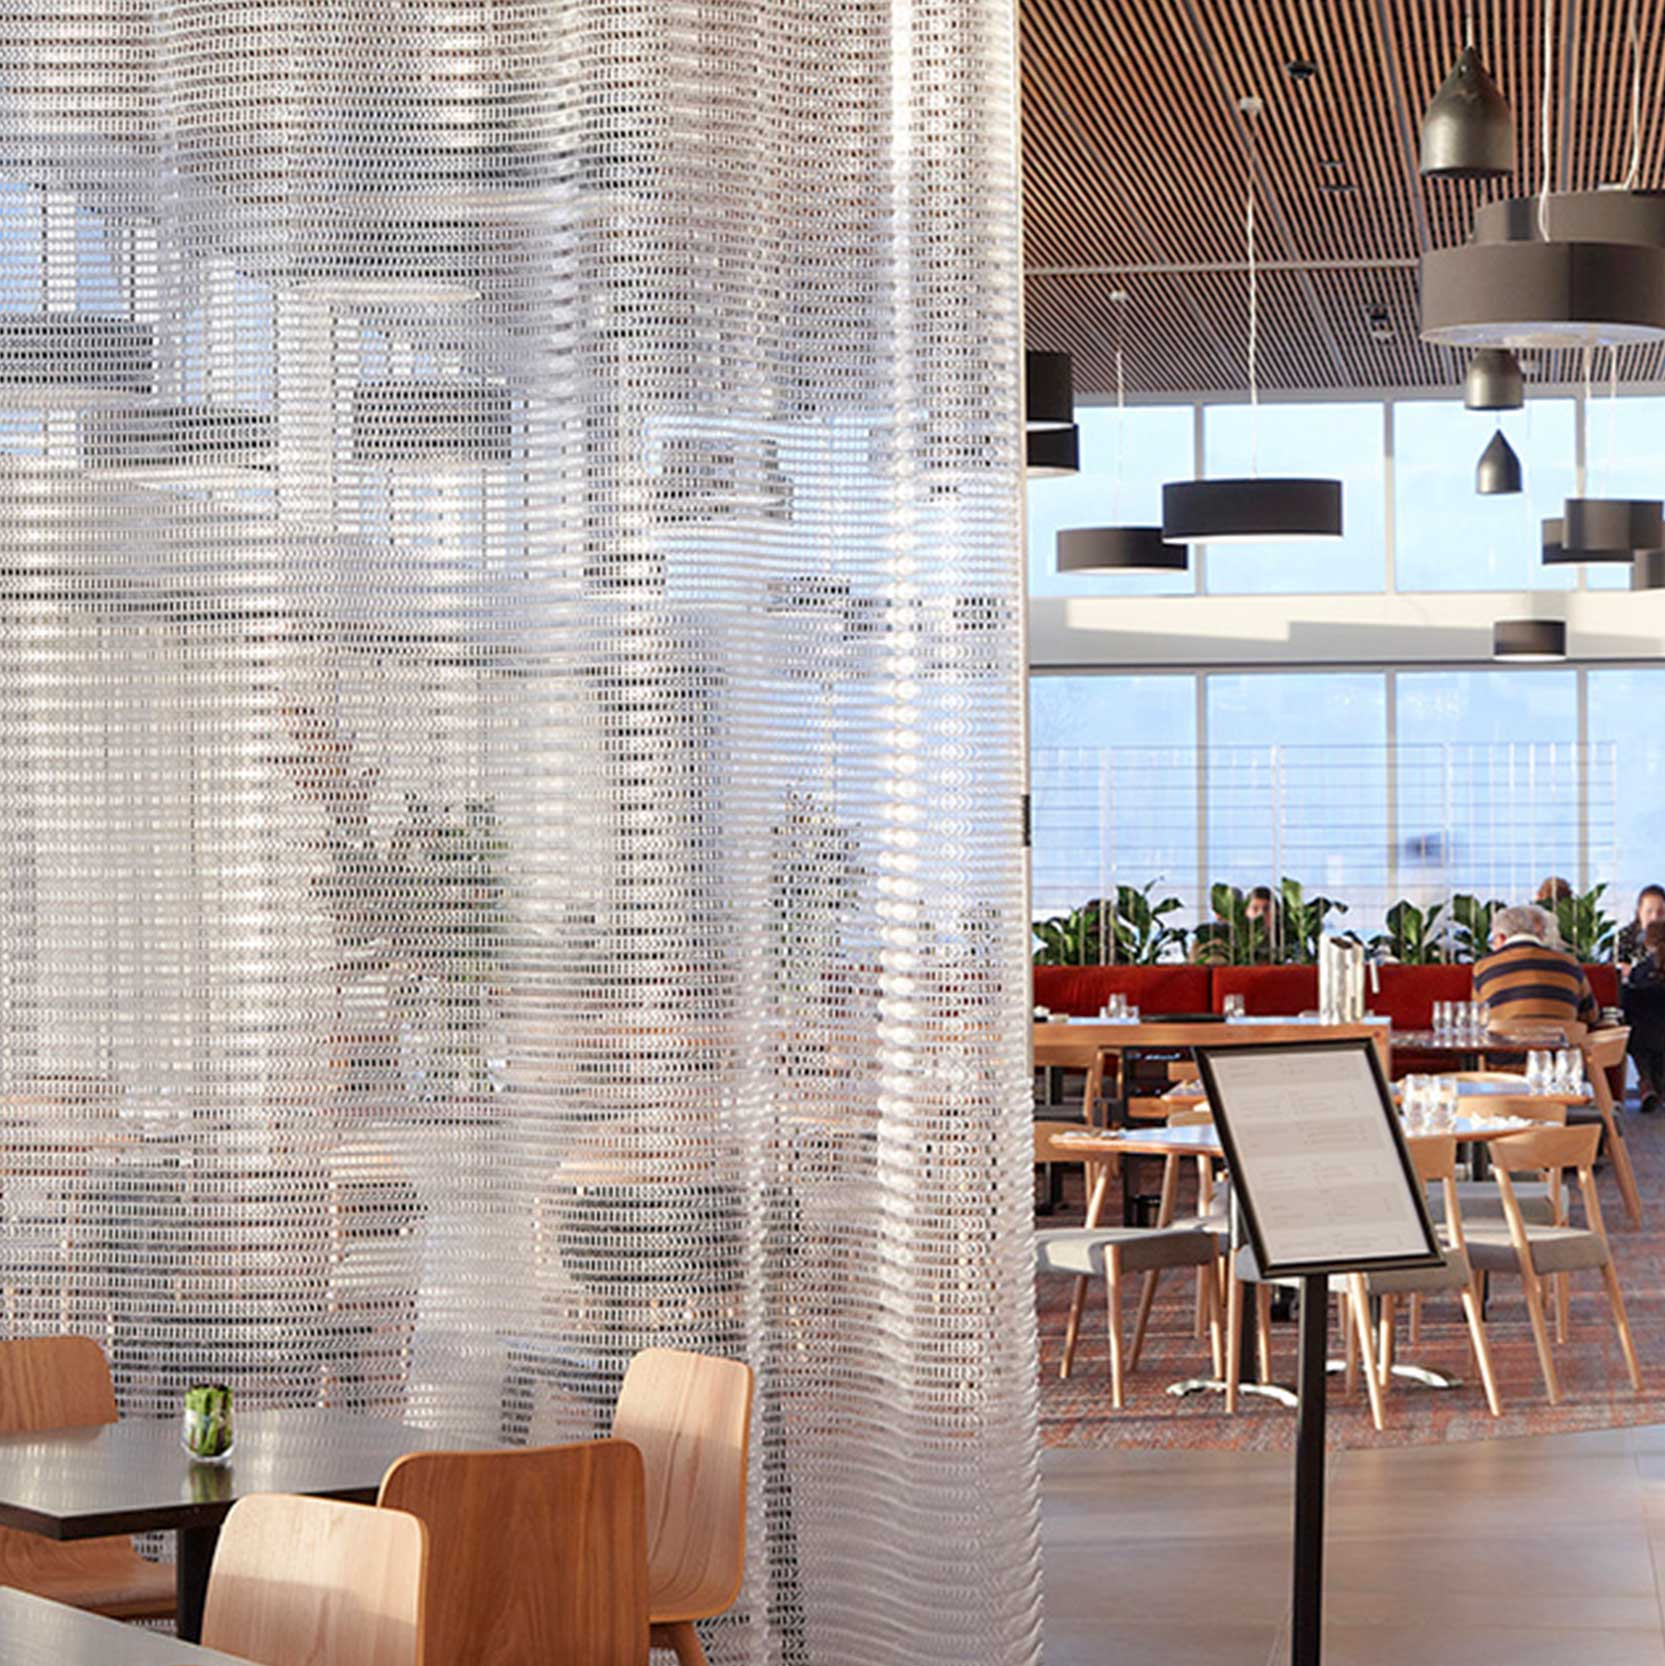 Folding Screens   Kaynemaile folding screens are an operable system ideal for creating functional separation and visual privacy while maintaining an open plan atmosphere.